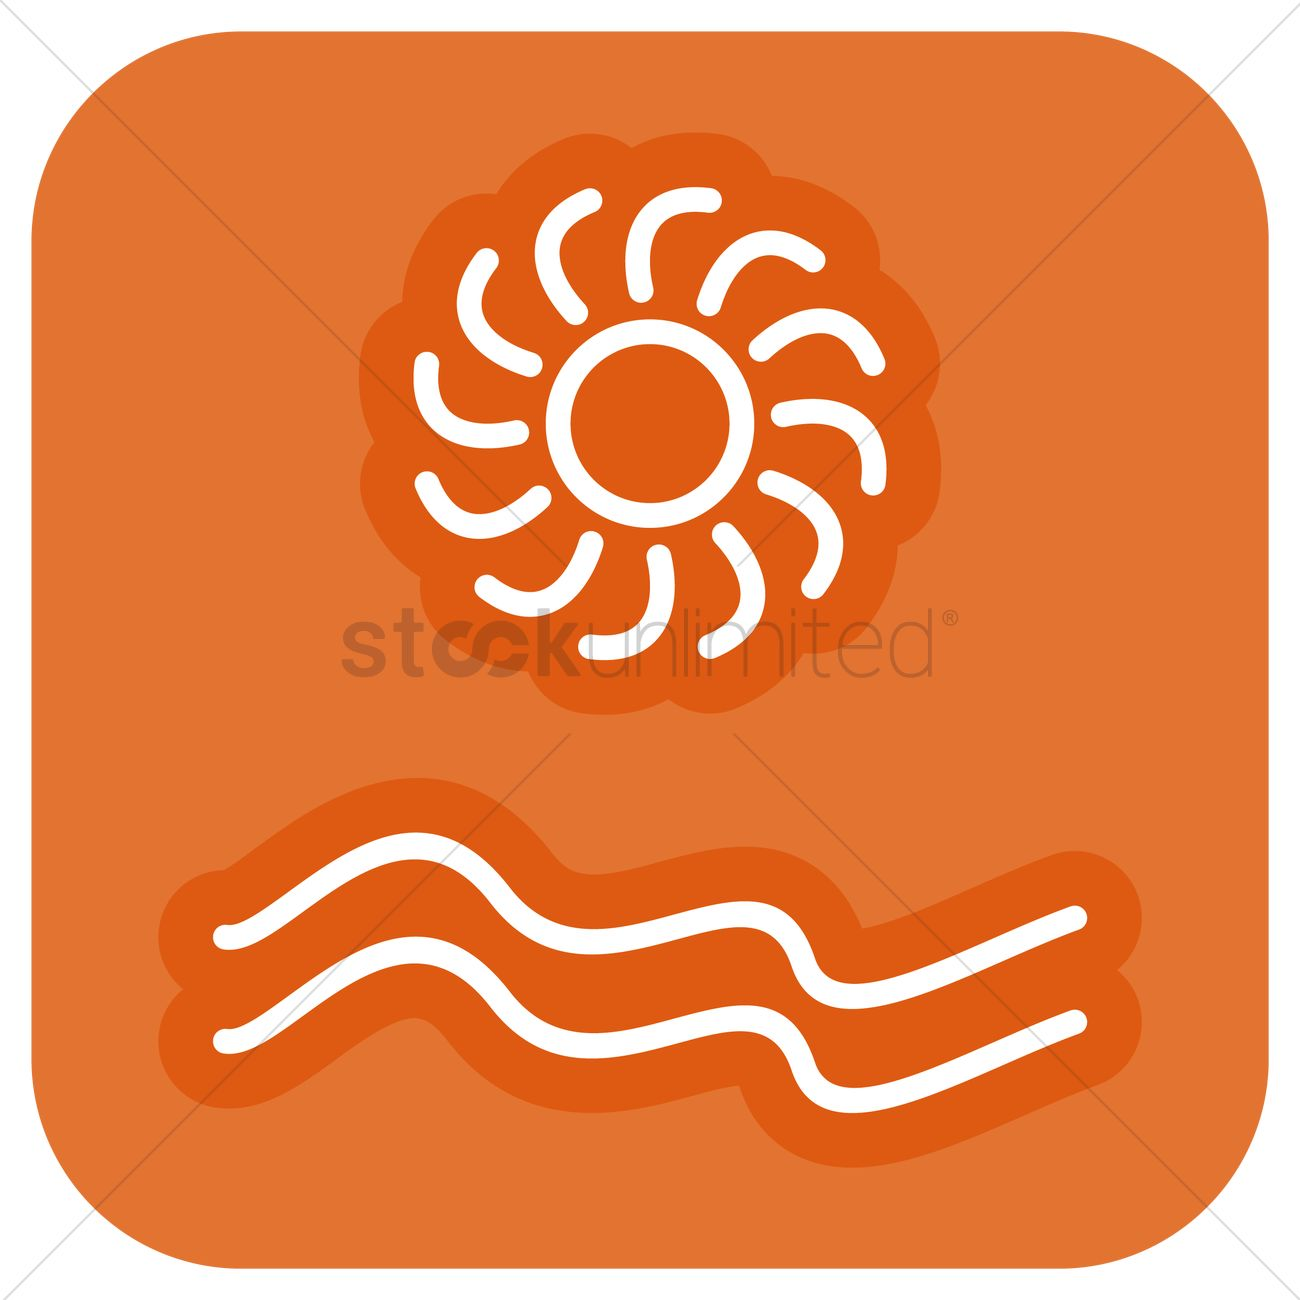 Supersede clipart png freeuse Free Sun and lake clipart Vector Image - 1261356 ... png freeuse